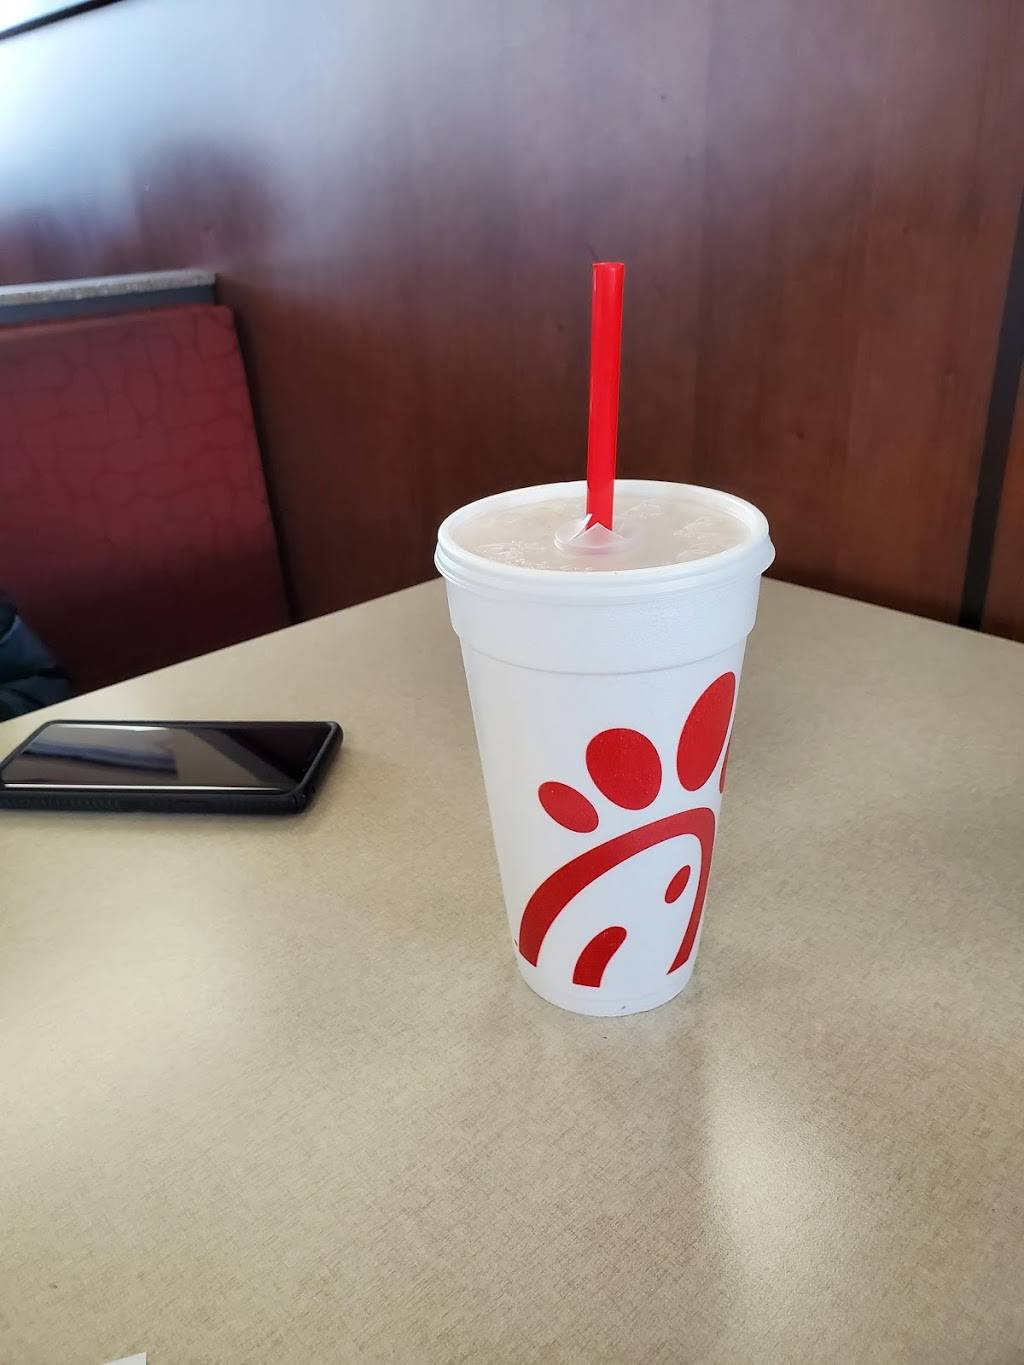 Chick-fil-A - restaurant  | Photo 5 of 10 | Address: 2225 State St, New Albany, IN 47150, USA | Phone: (812) 542-6868